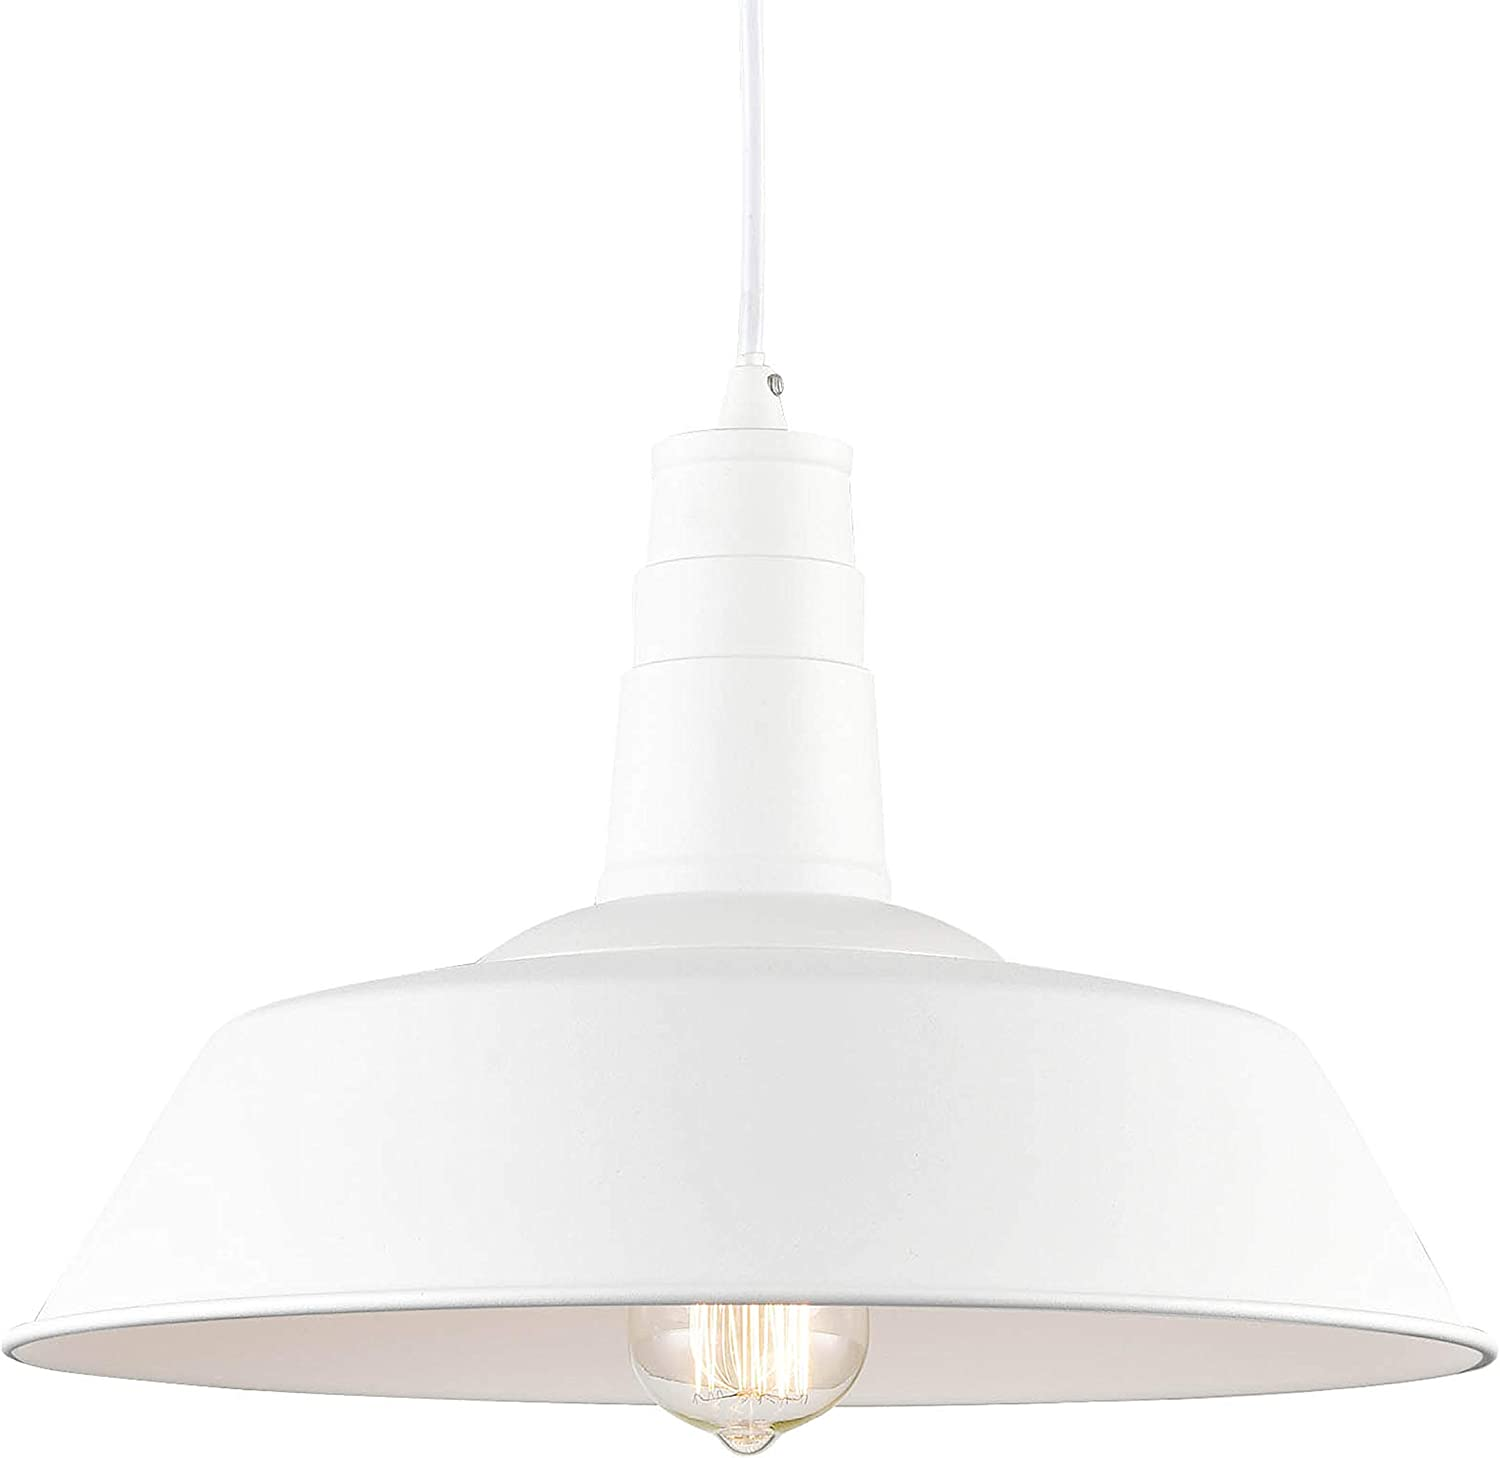 Light Society Kress Pendant Light, Matte White Shade with White Interior, Vintage Modern Industrial Farmhouse Lighting Fixture LS-C199-WHI